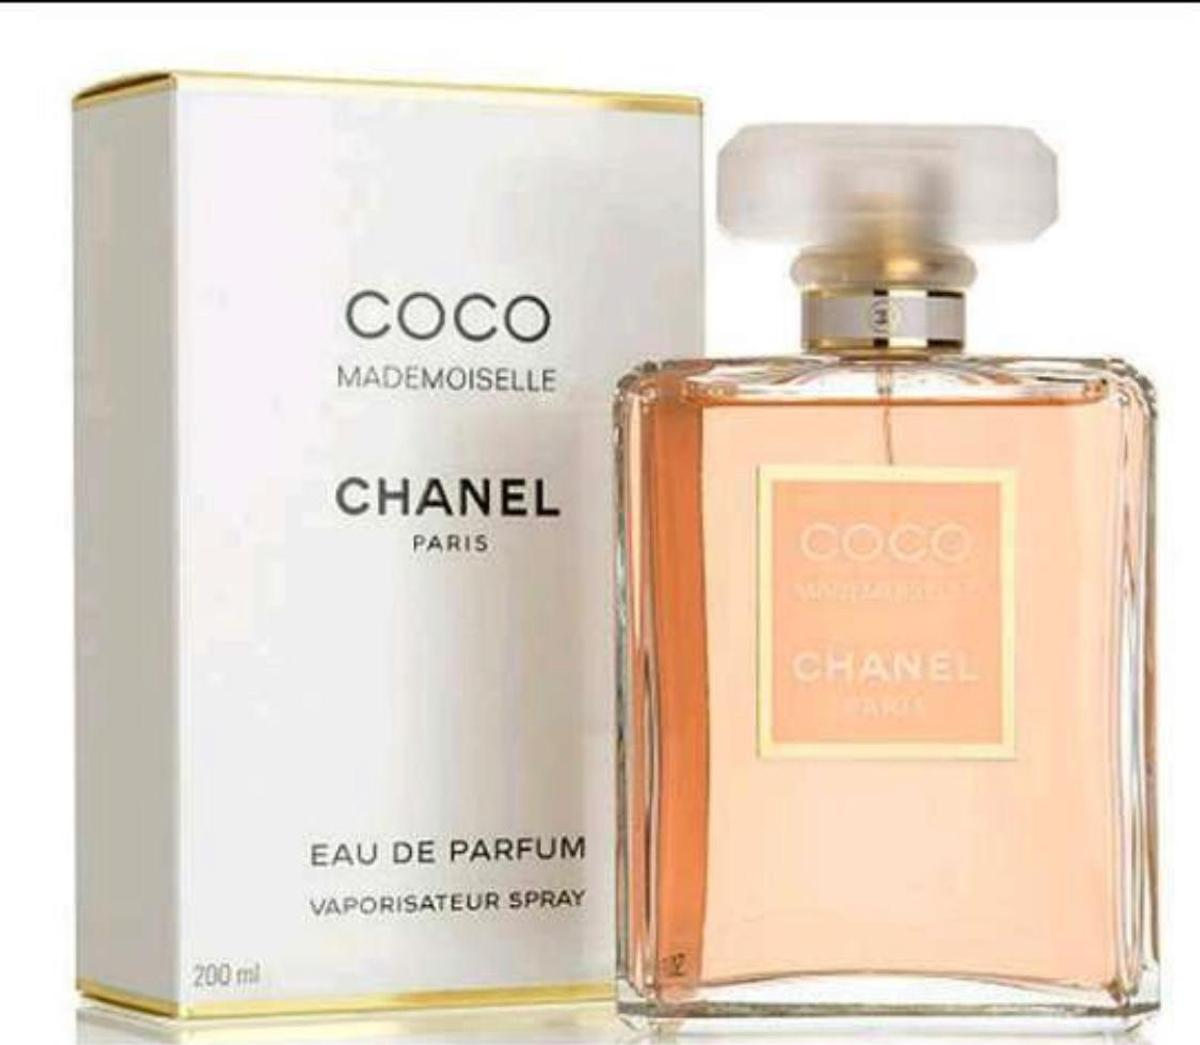 Coco Mademoiselle Chanel Paris 100ml In 1020 Kg Leopoldstadt For